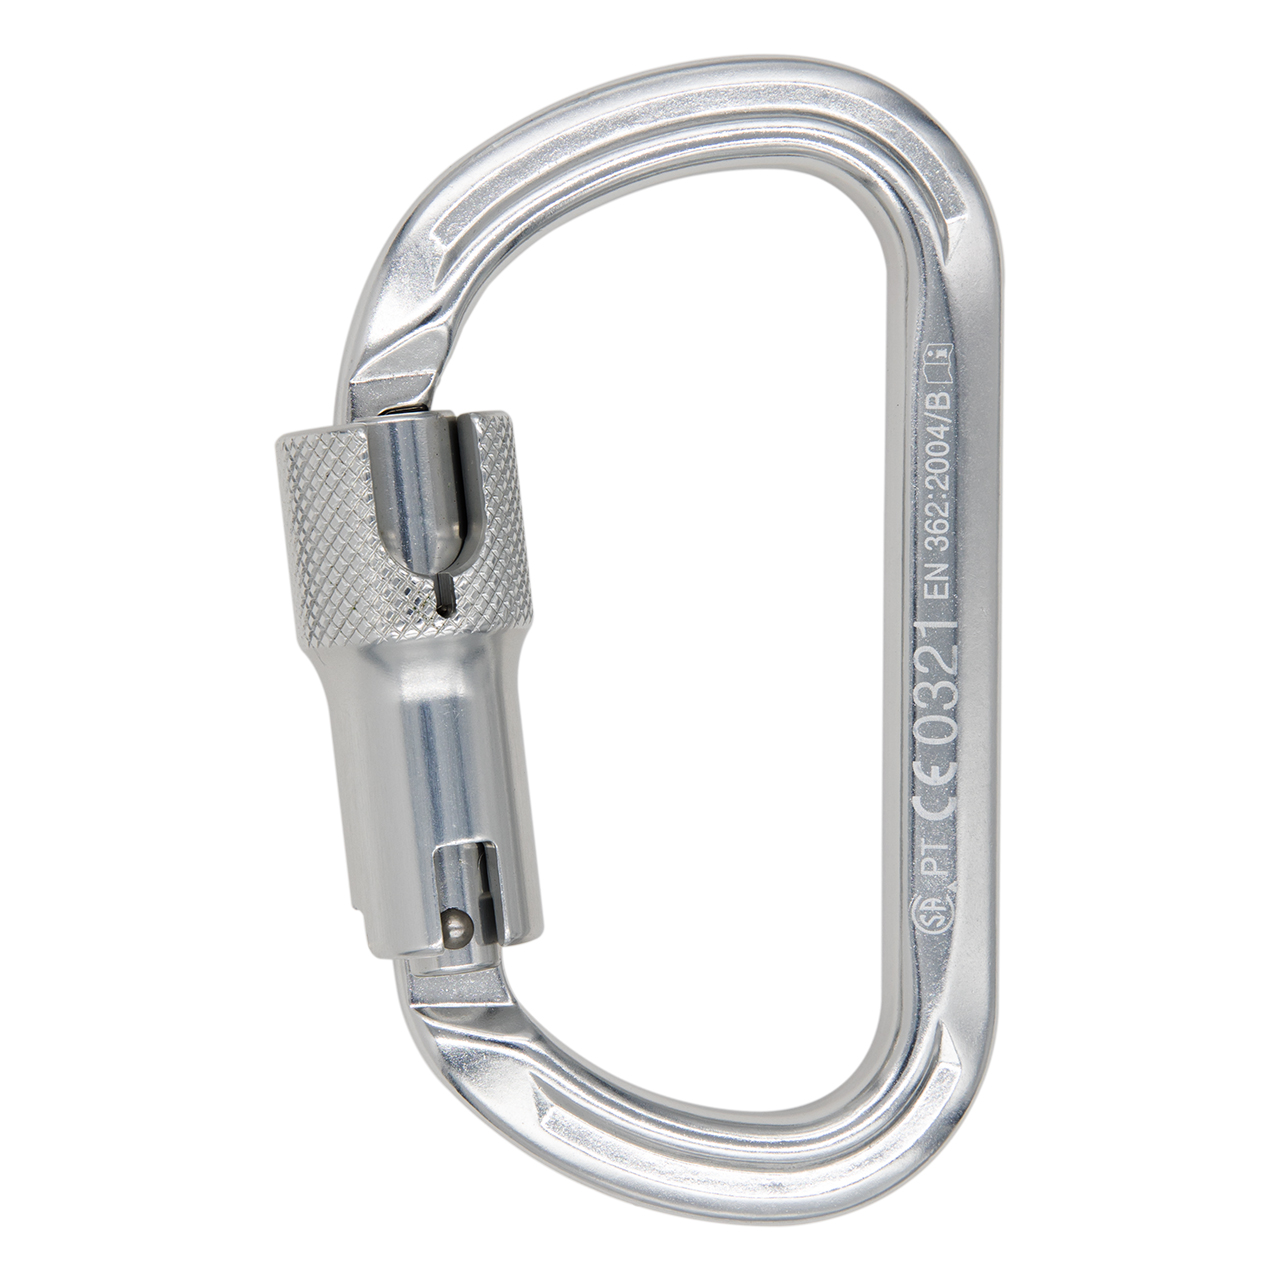 SI Z359.12 Aluminum Alloy Carabiner - US Rigging and KONG